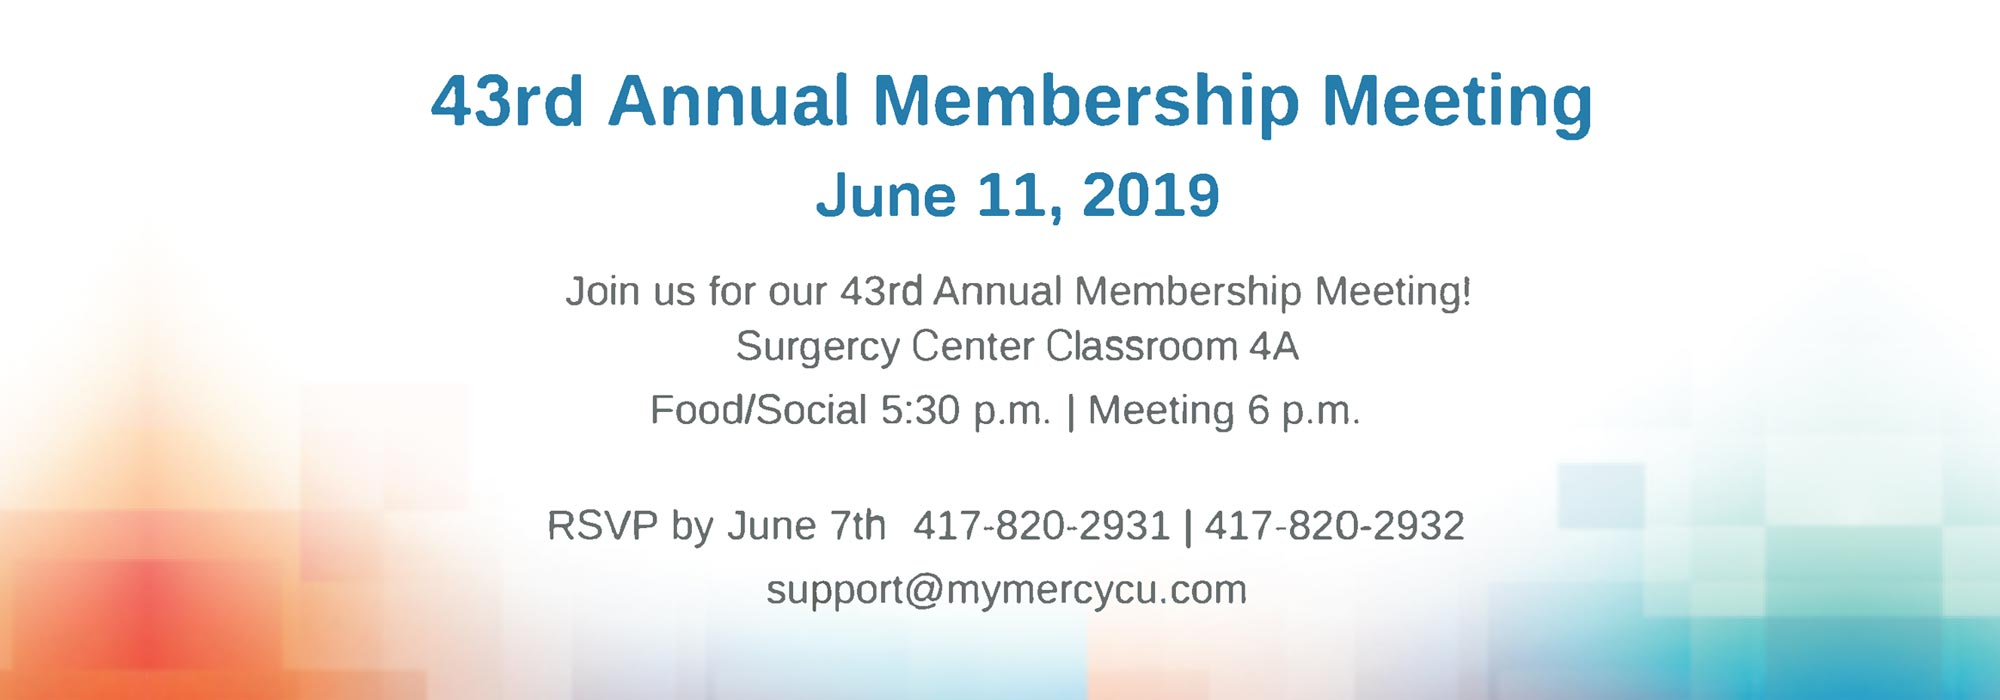 43rd Annual Membership Meeting June 11, 2019